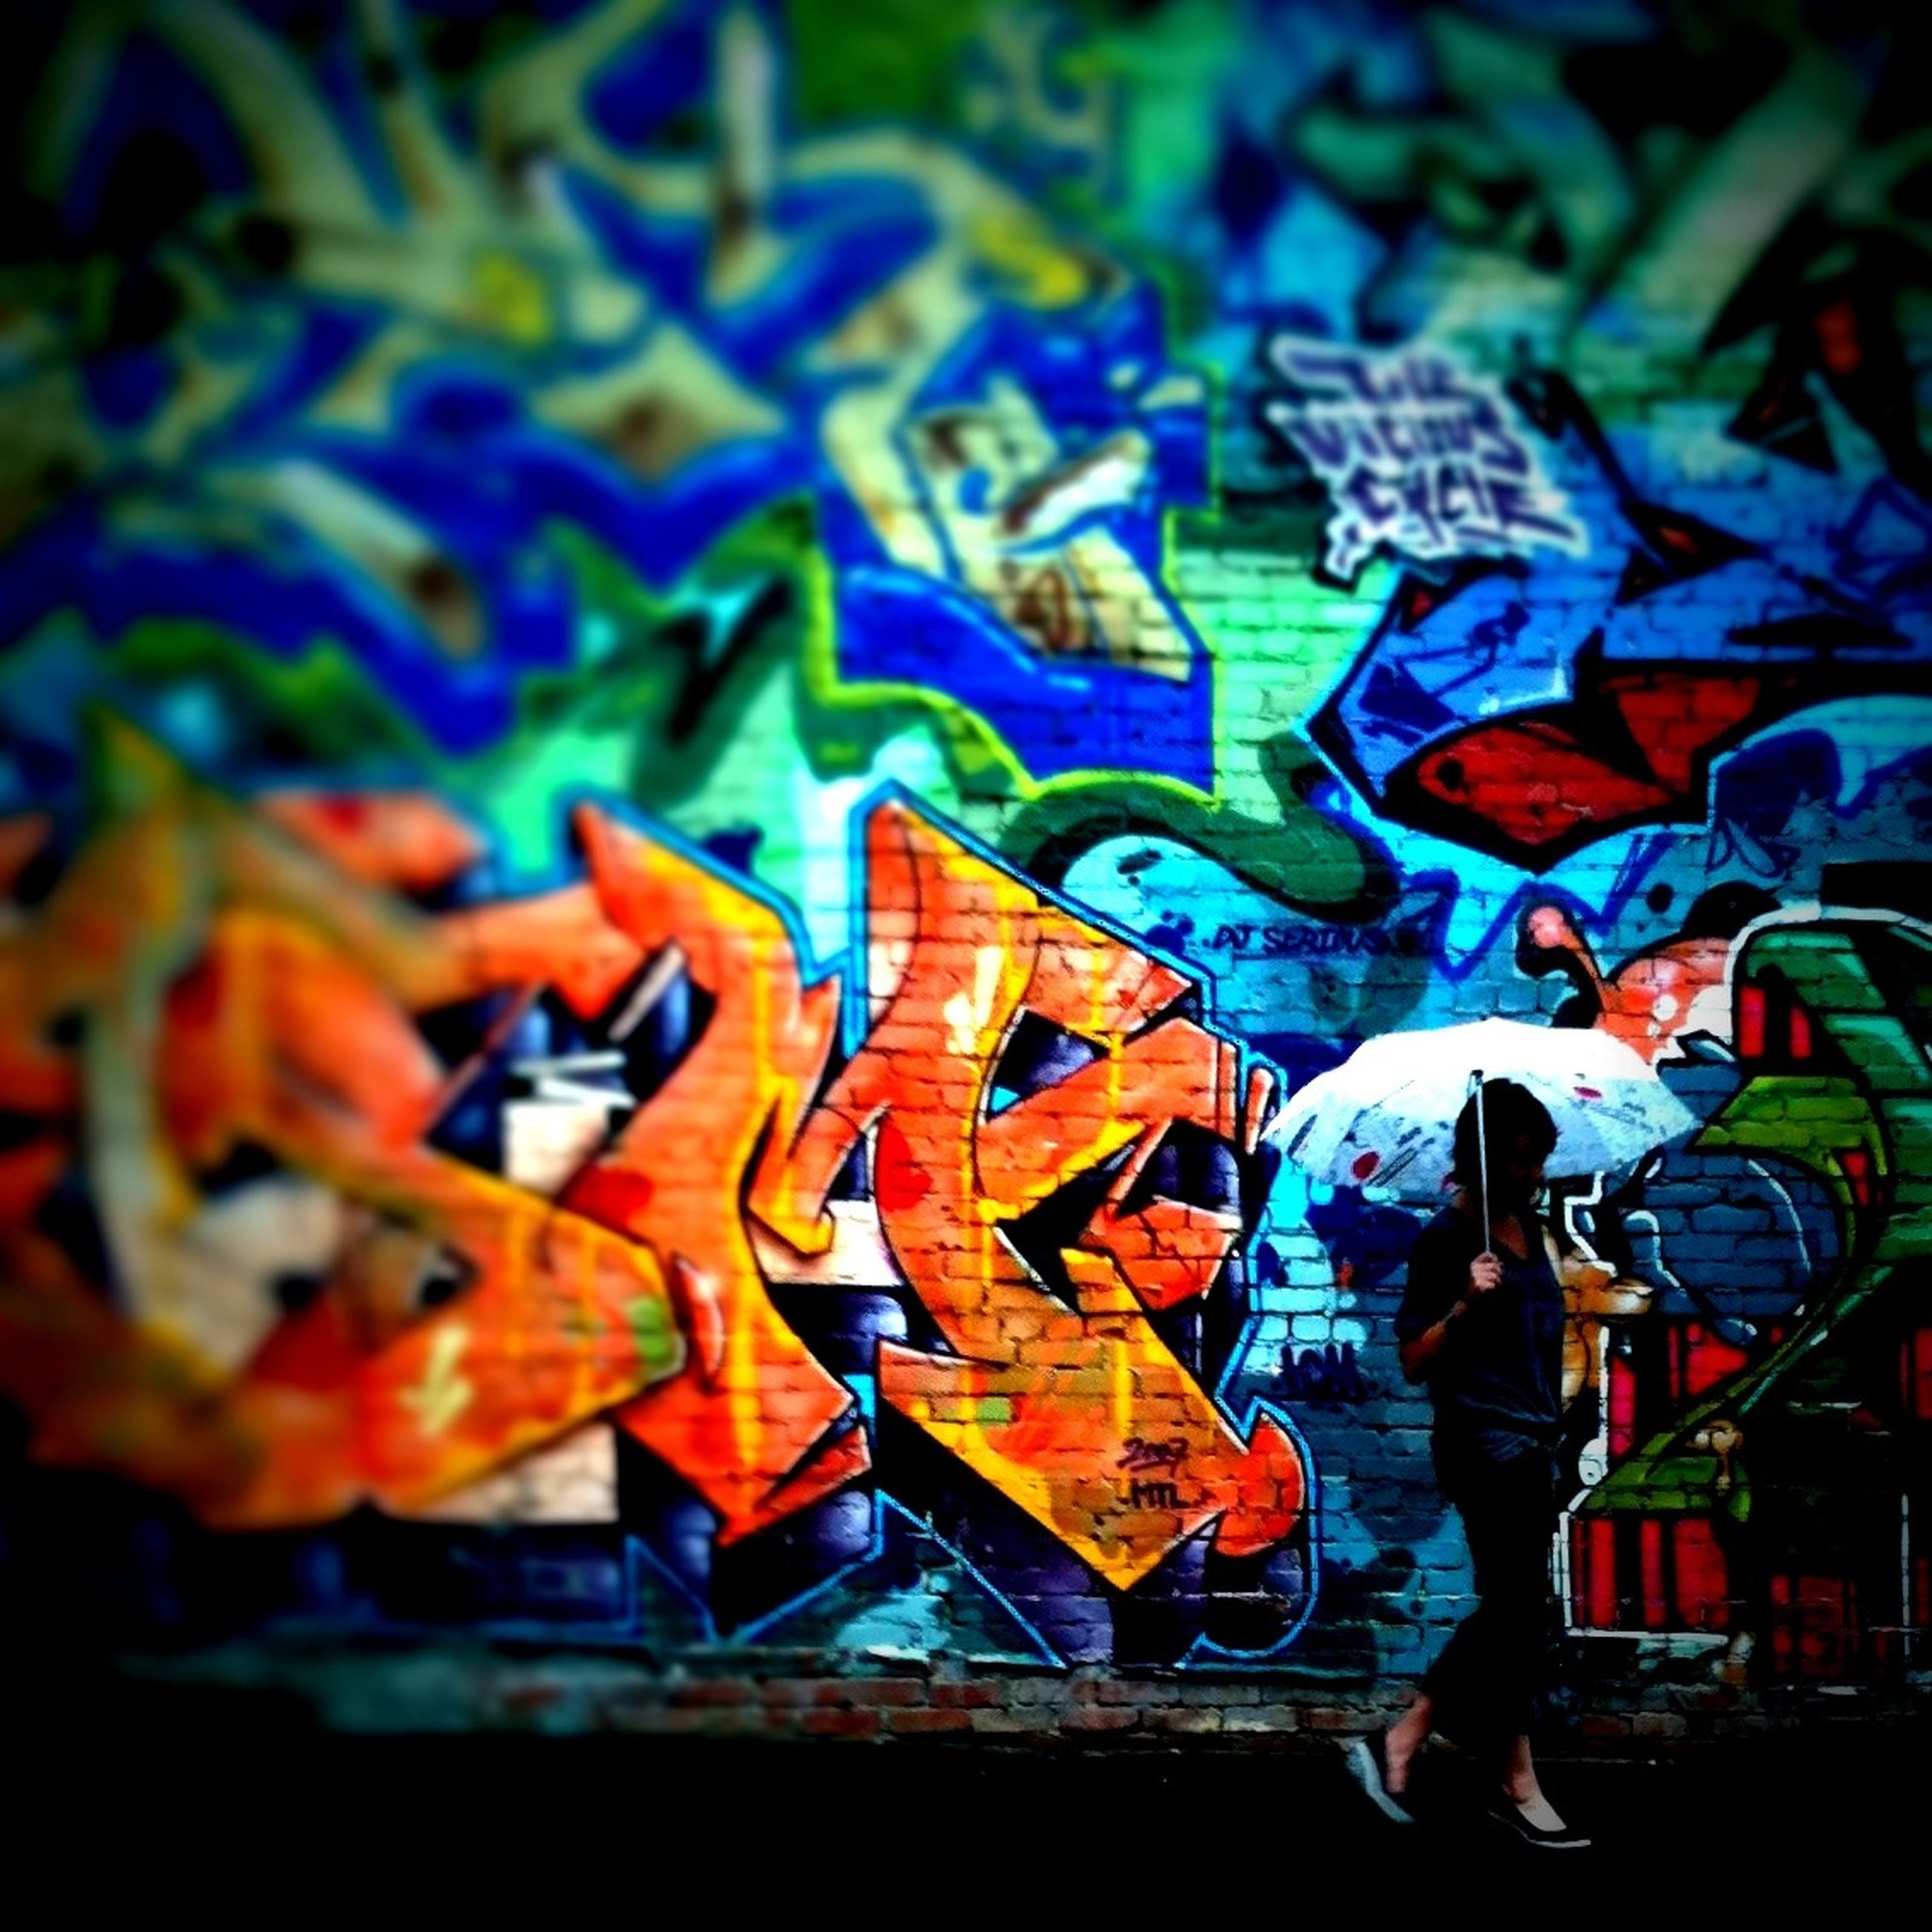 multi colored, creativity, art and craft, art, blue, lifestyles, indoors, leisure activity, men, graffiti, colorful, full length, wall - building feature, pattern, animal representation, standing, close-up